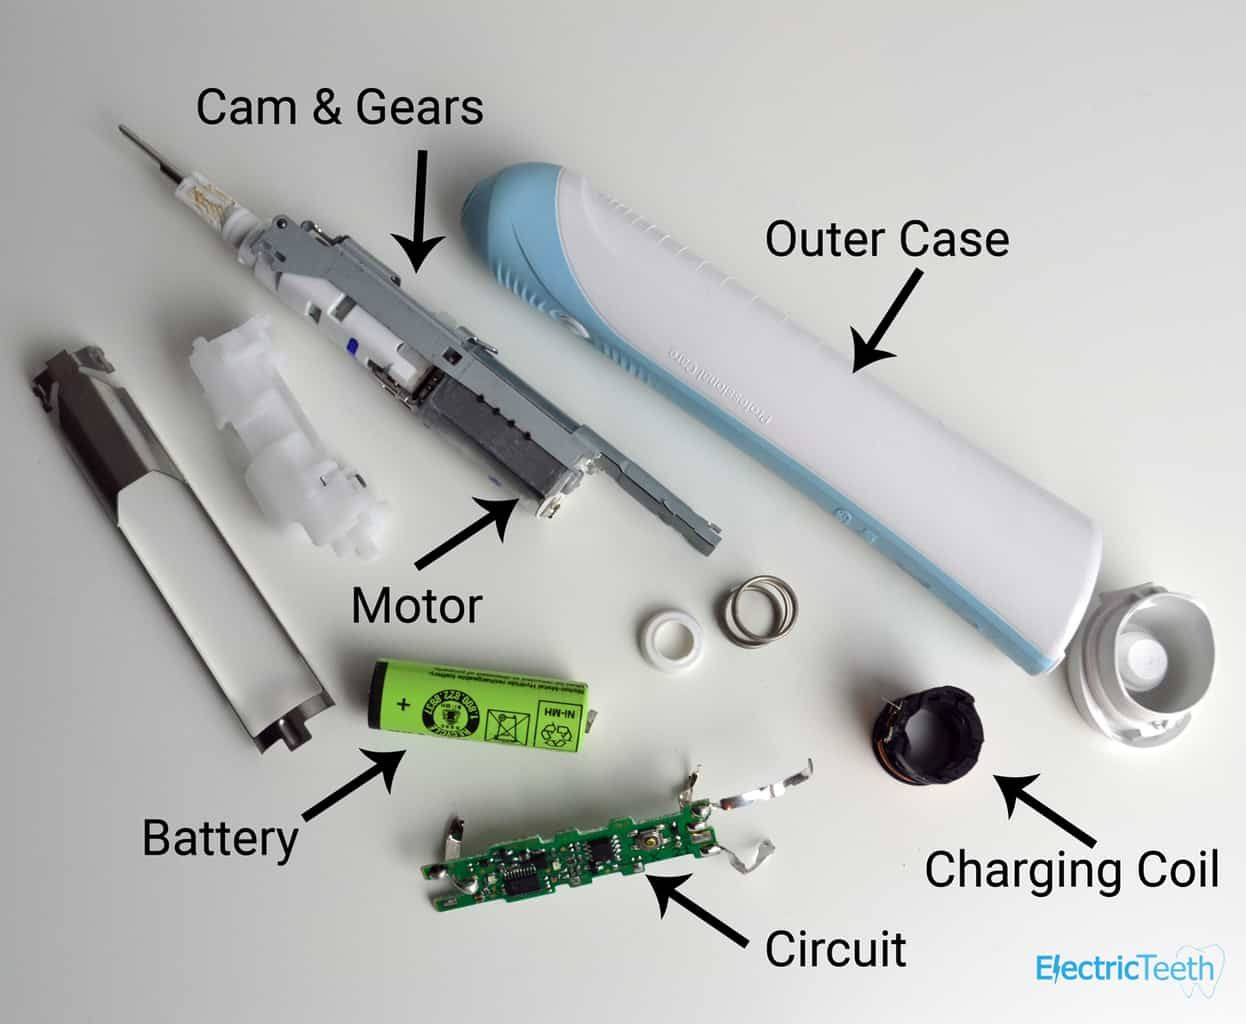 How does an electric toothbrush work? 6